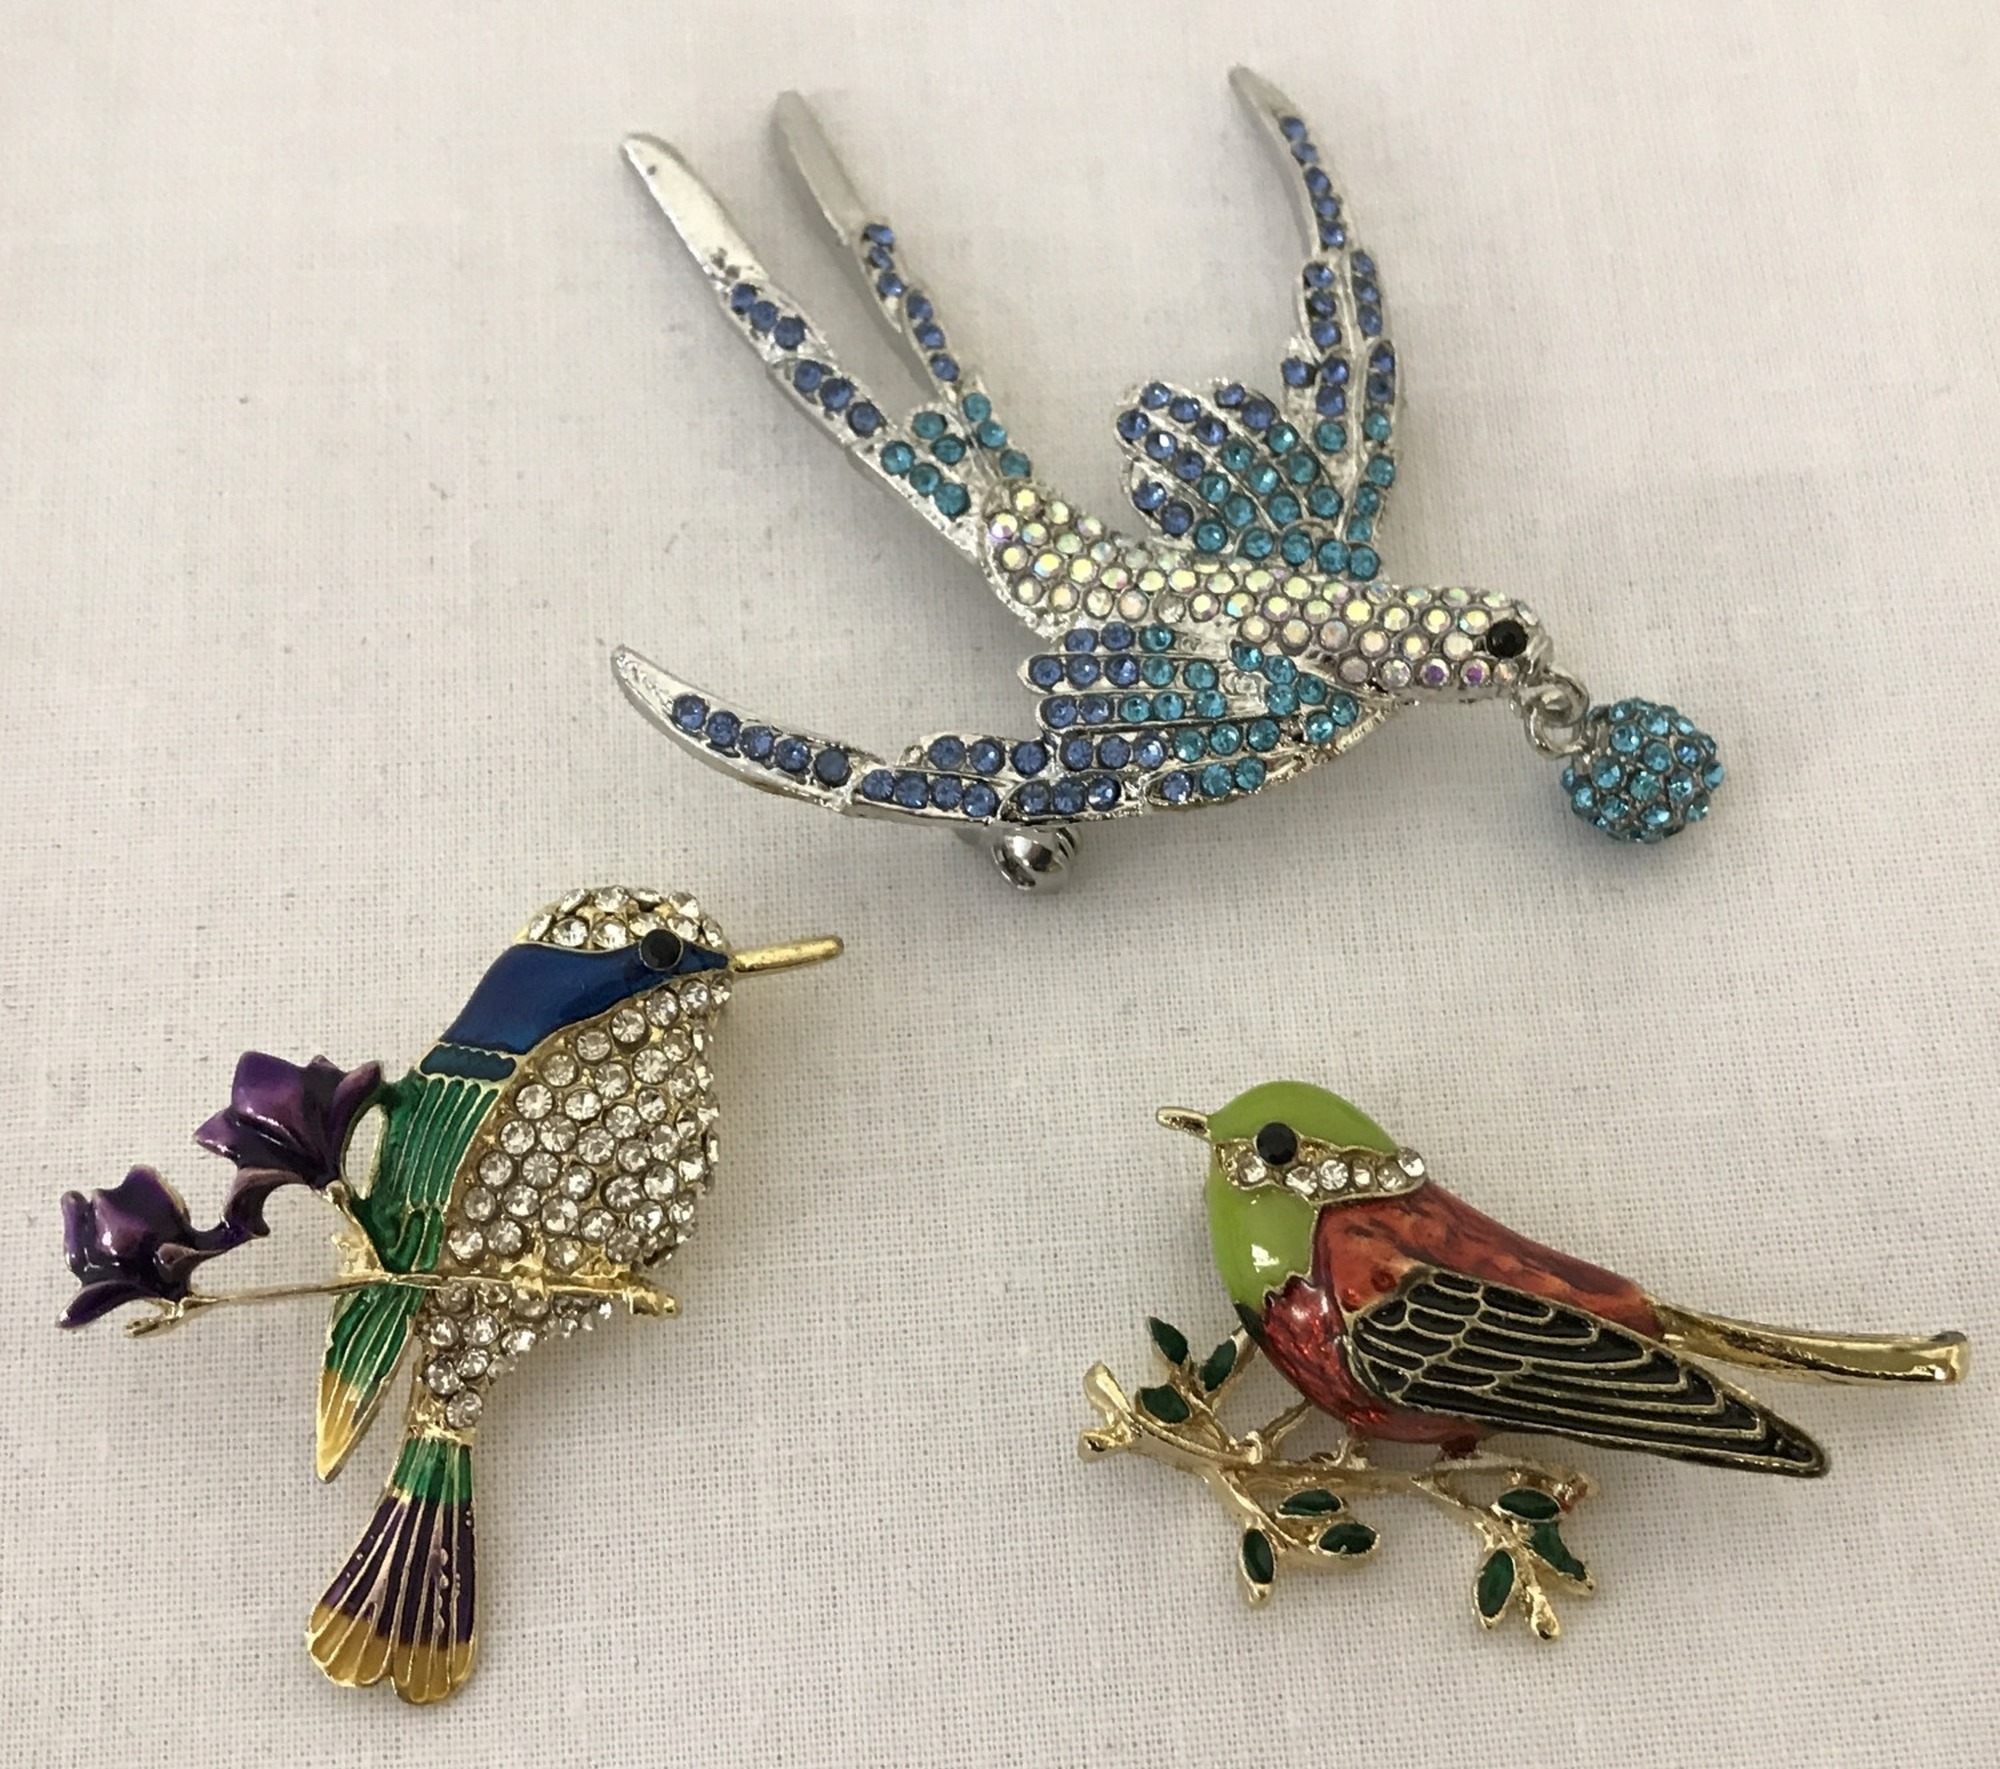 Lot 22 - 3 costume jewellery enamelled and stone set brooches in the shape of birds.